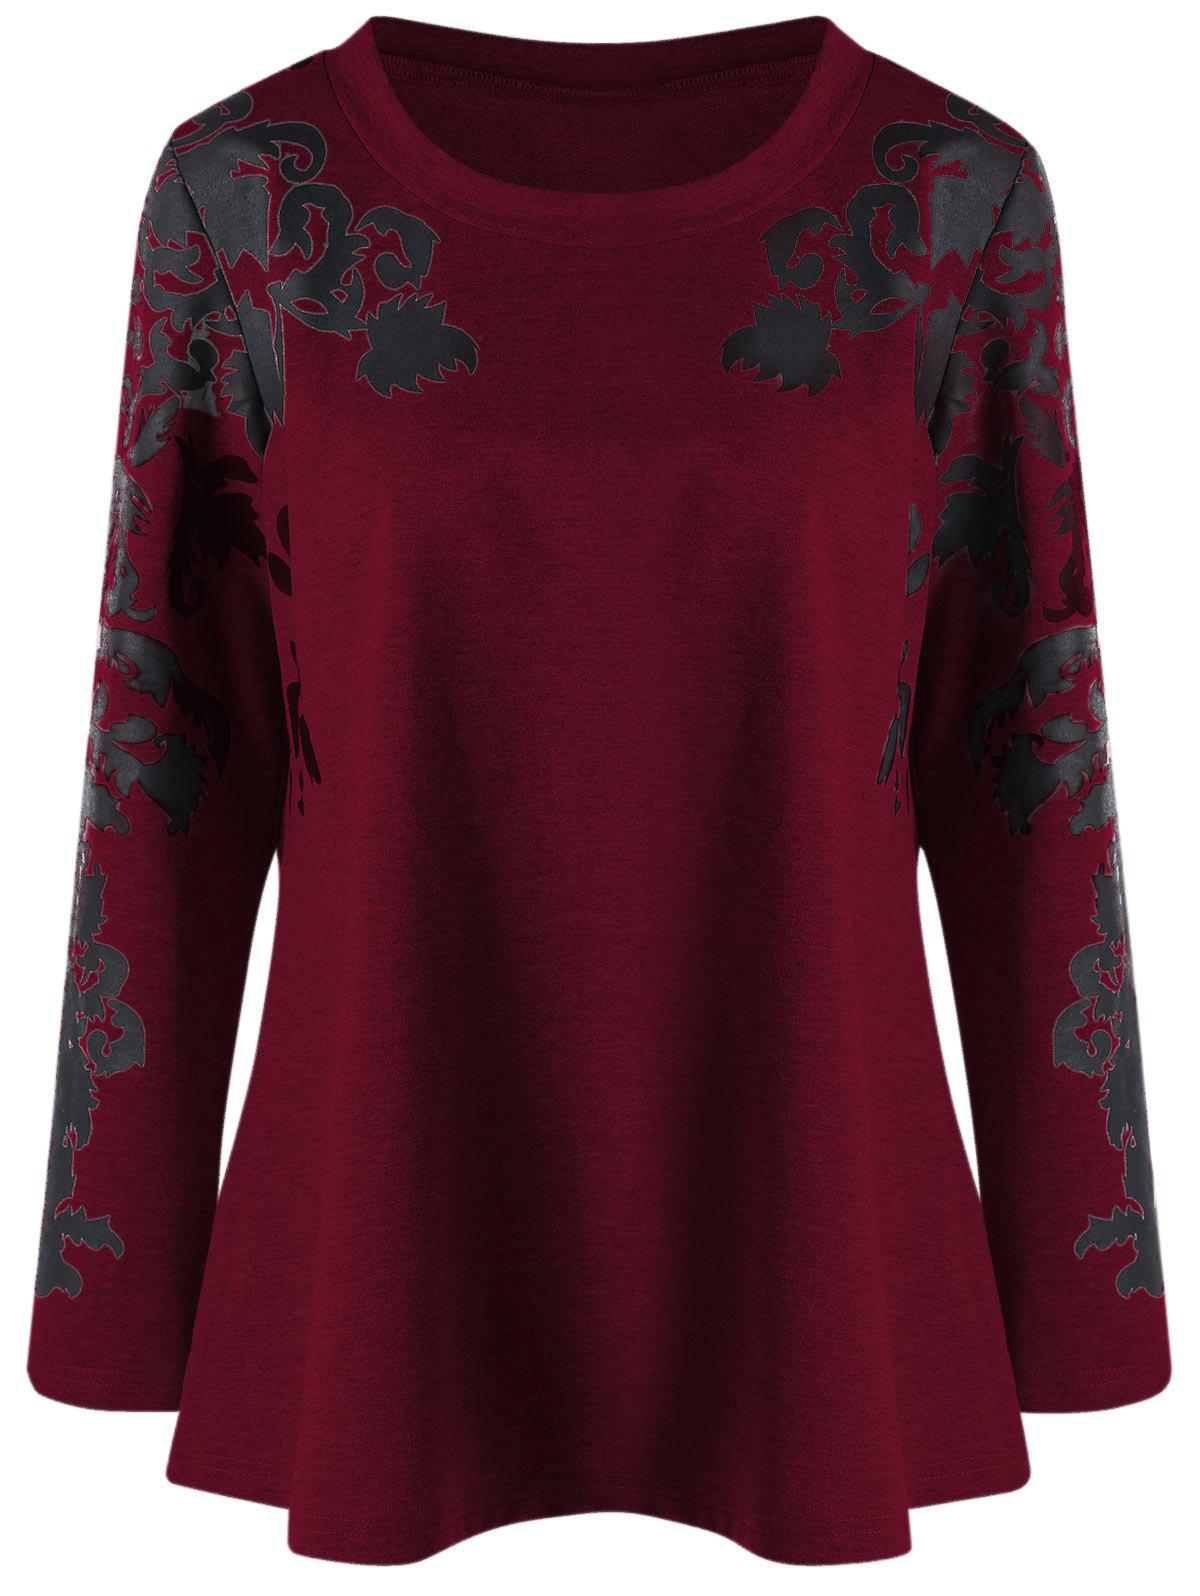 Raglan Sleeve Plus Size Print TopWOMEN<br><br>Size: 3XL; Color: DEEP RED; Material: Cotton Blends,Polyester,Spandex; Shirt Length: Regular; Sleeve Length: Full; Collar: Round Neck; Style: Casual; Season: Fall,Spring; Pattern Type: Print; Weight: 0.3910kg; Package Contents: 1 x Top;